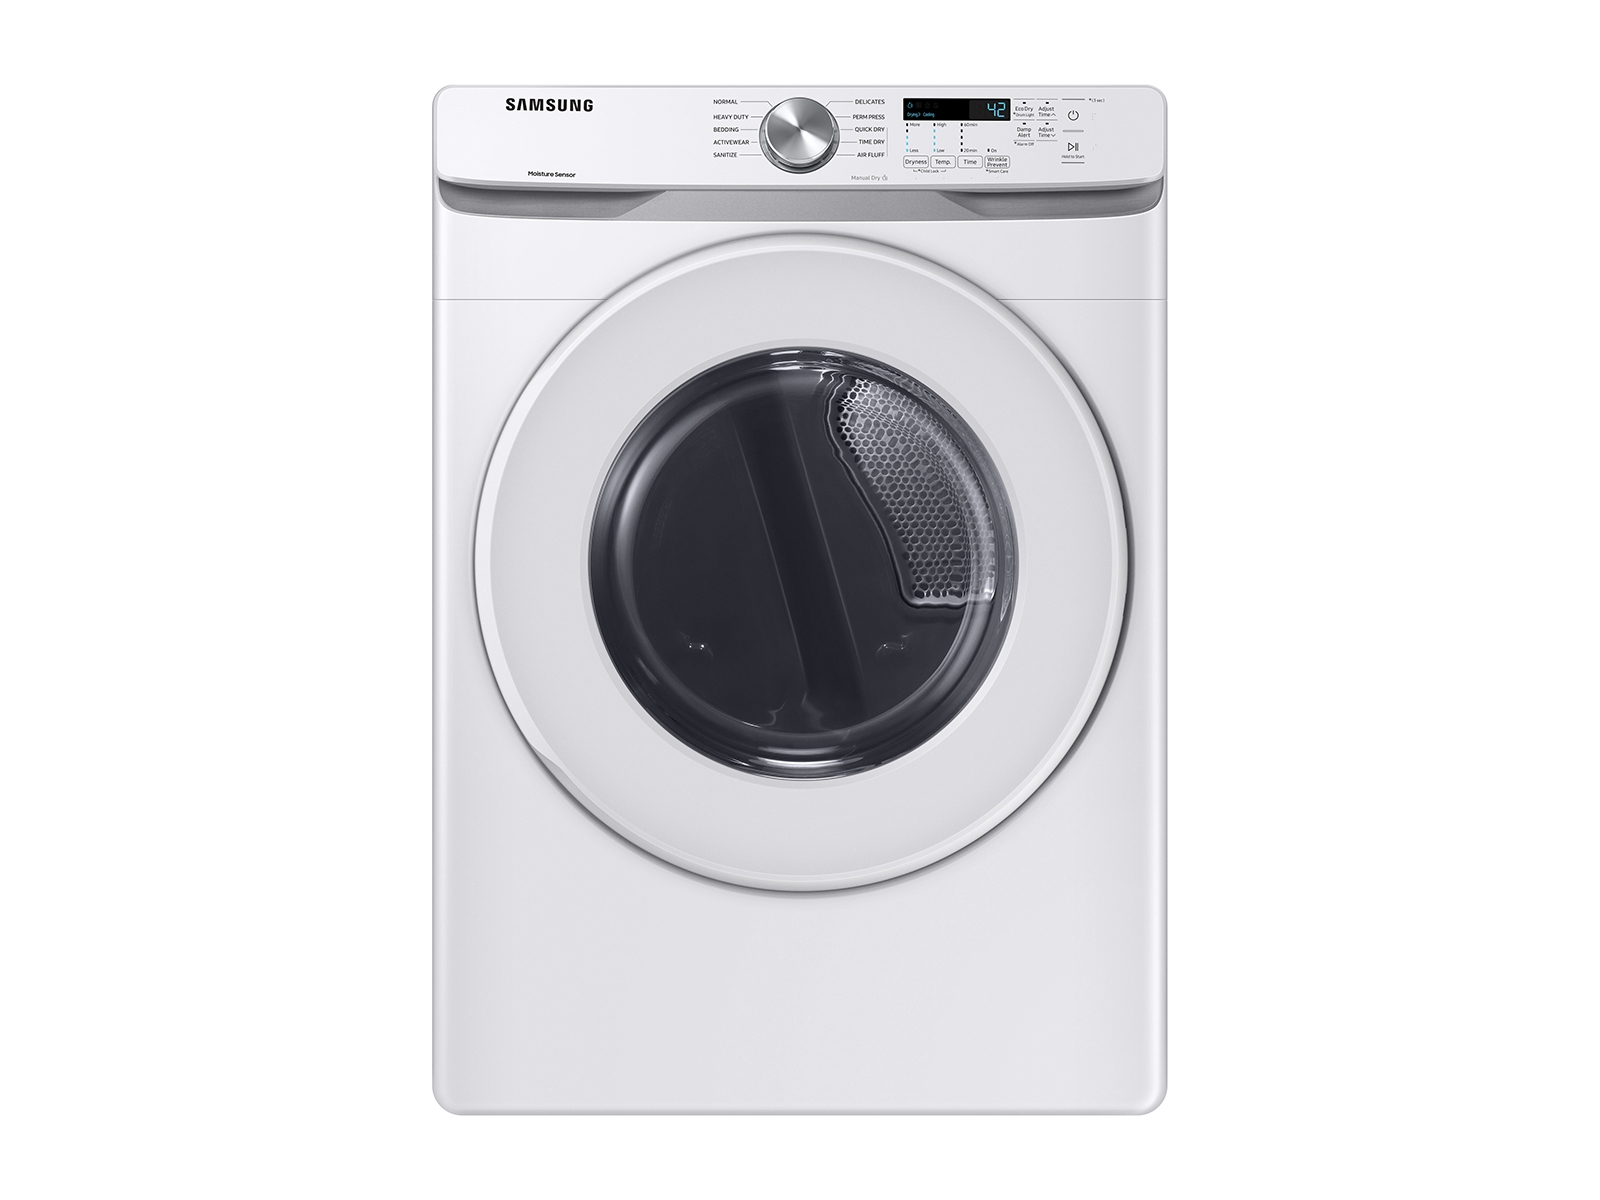 Samsung 7.5 cu. ft. Electric Dryer with Sensor Dry in White